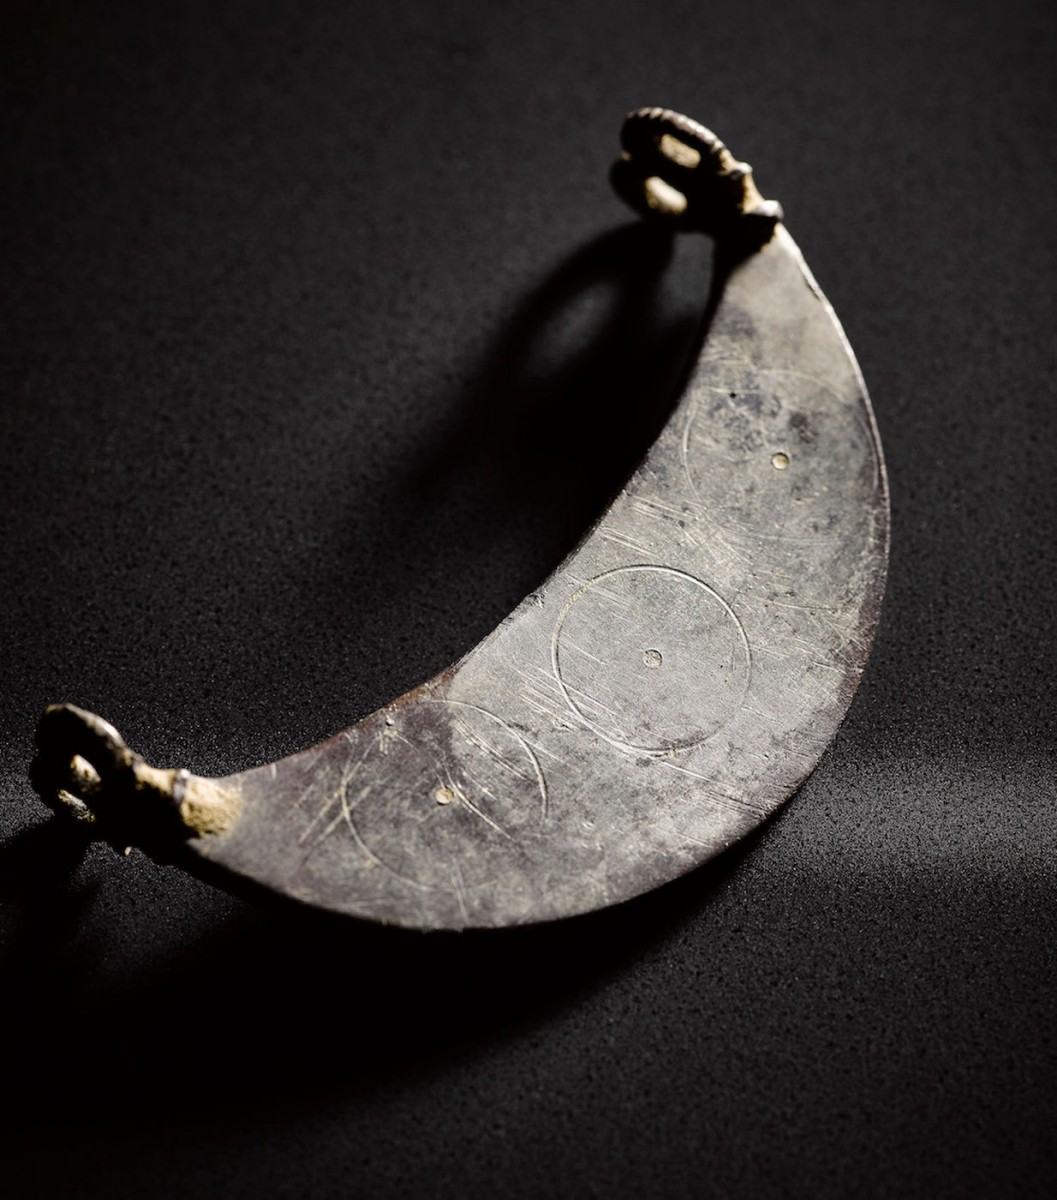 A crescent-shaped pendant that has two double loops. Photo Credit: Live Science.